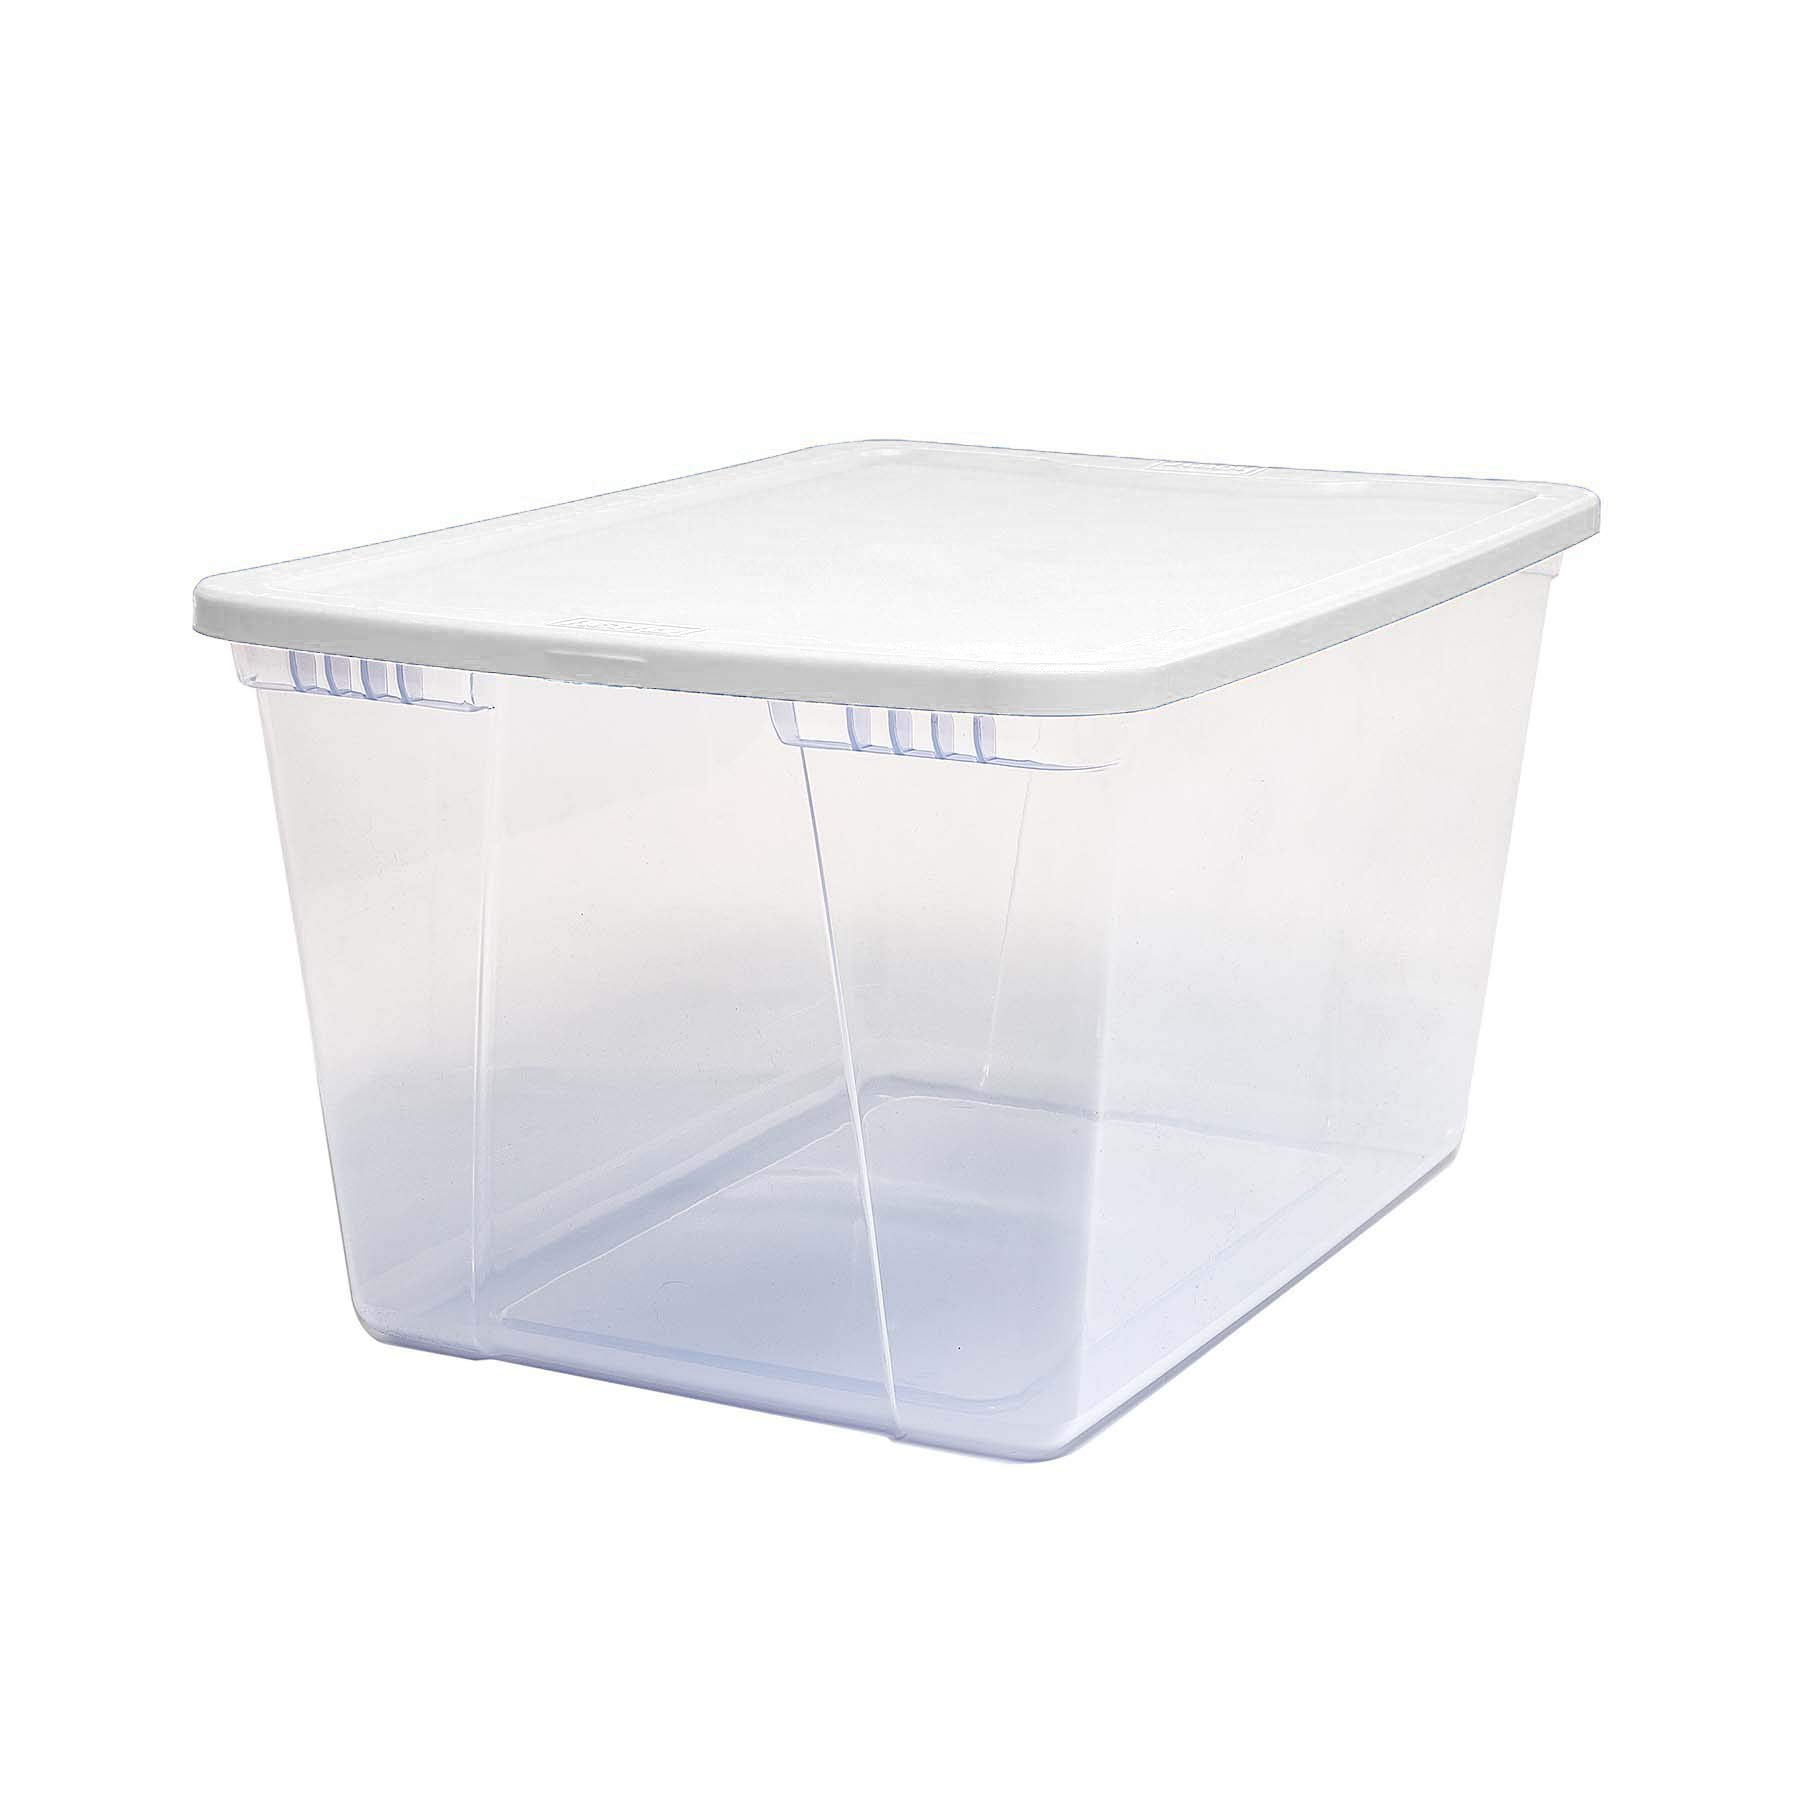 Homz 56 Quart Snaplock Container Clear Storage Bin with Lid, 4 Pack, White, 4 Sets by Homz (Image #3)